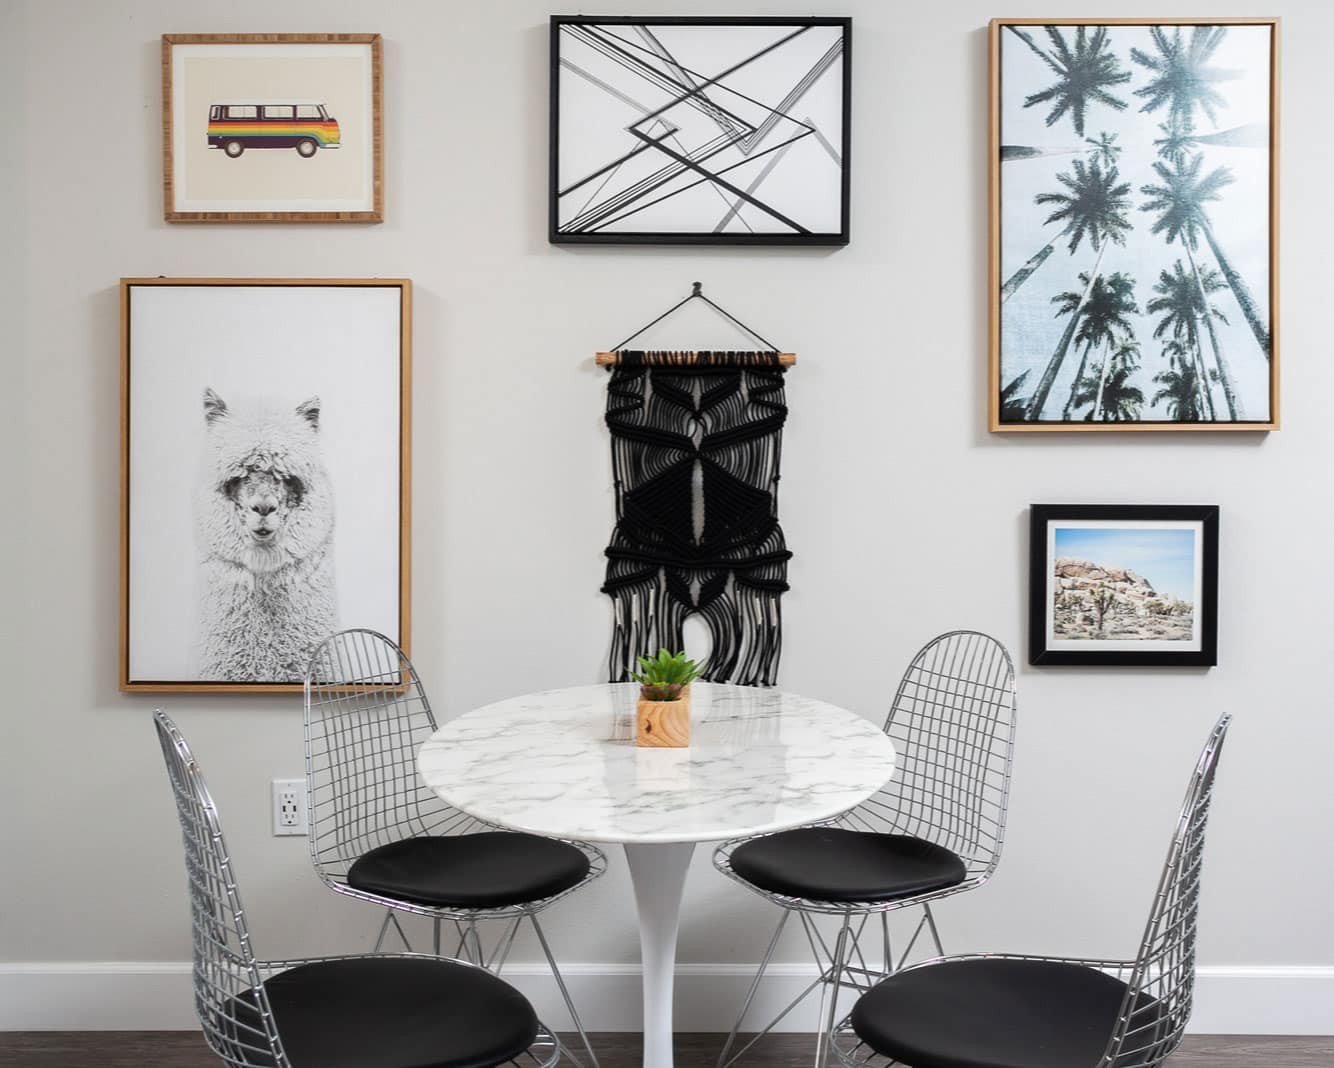 Marble round table with four metal chairs and paintings on the wall